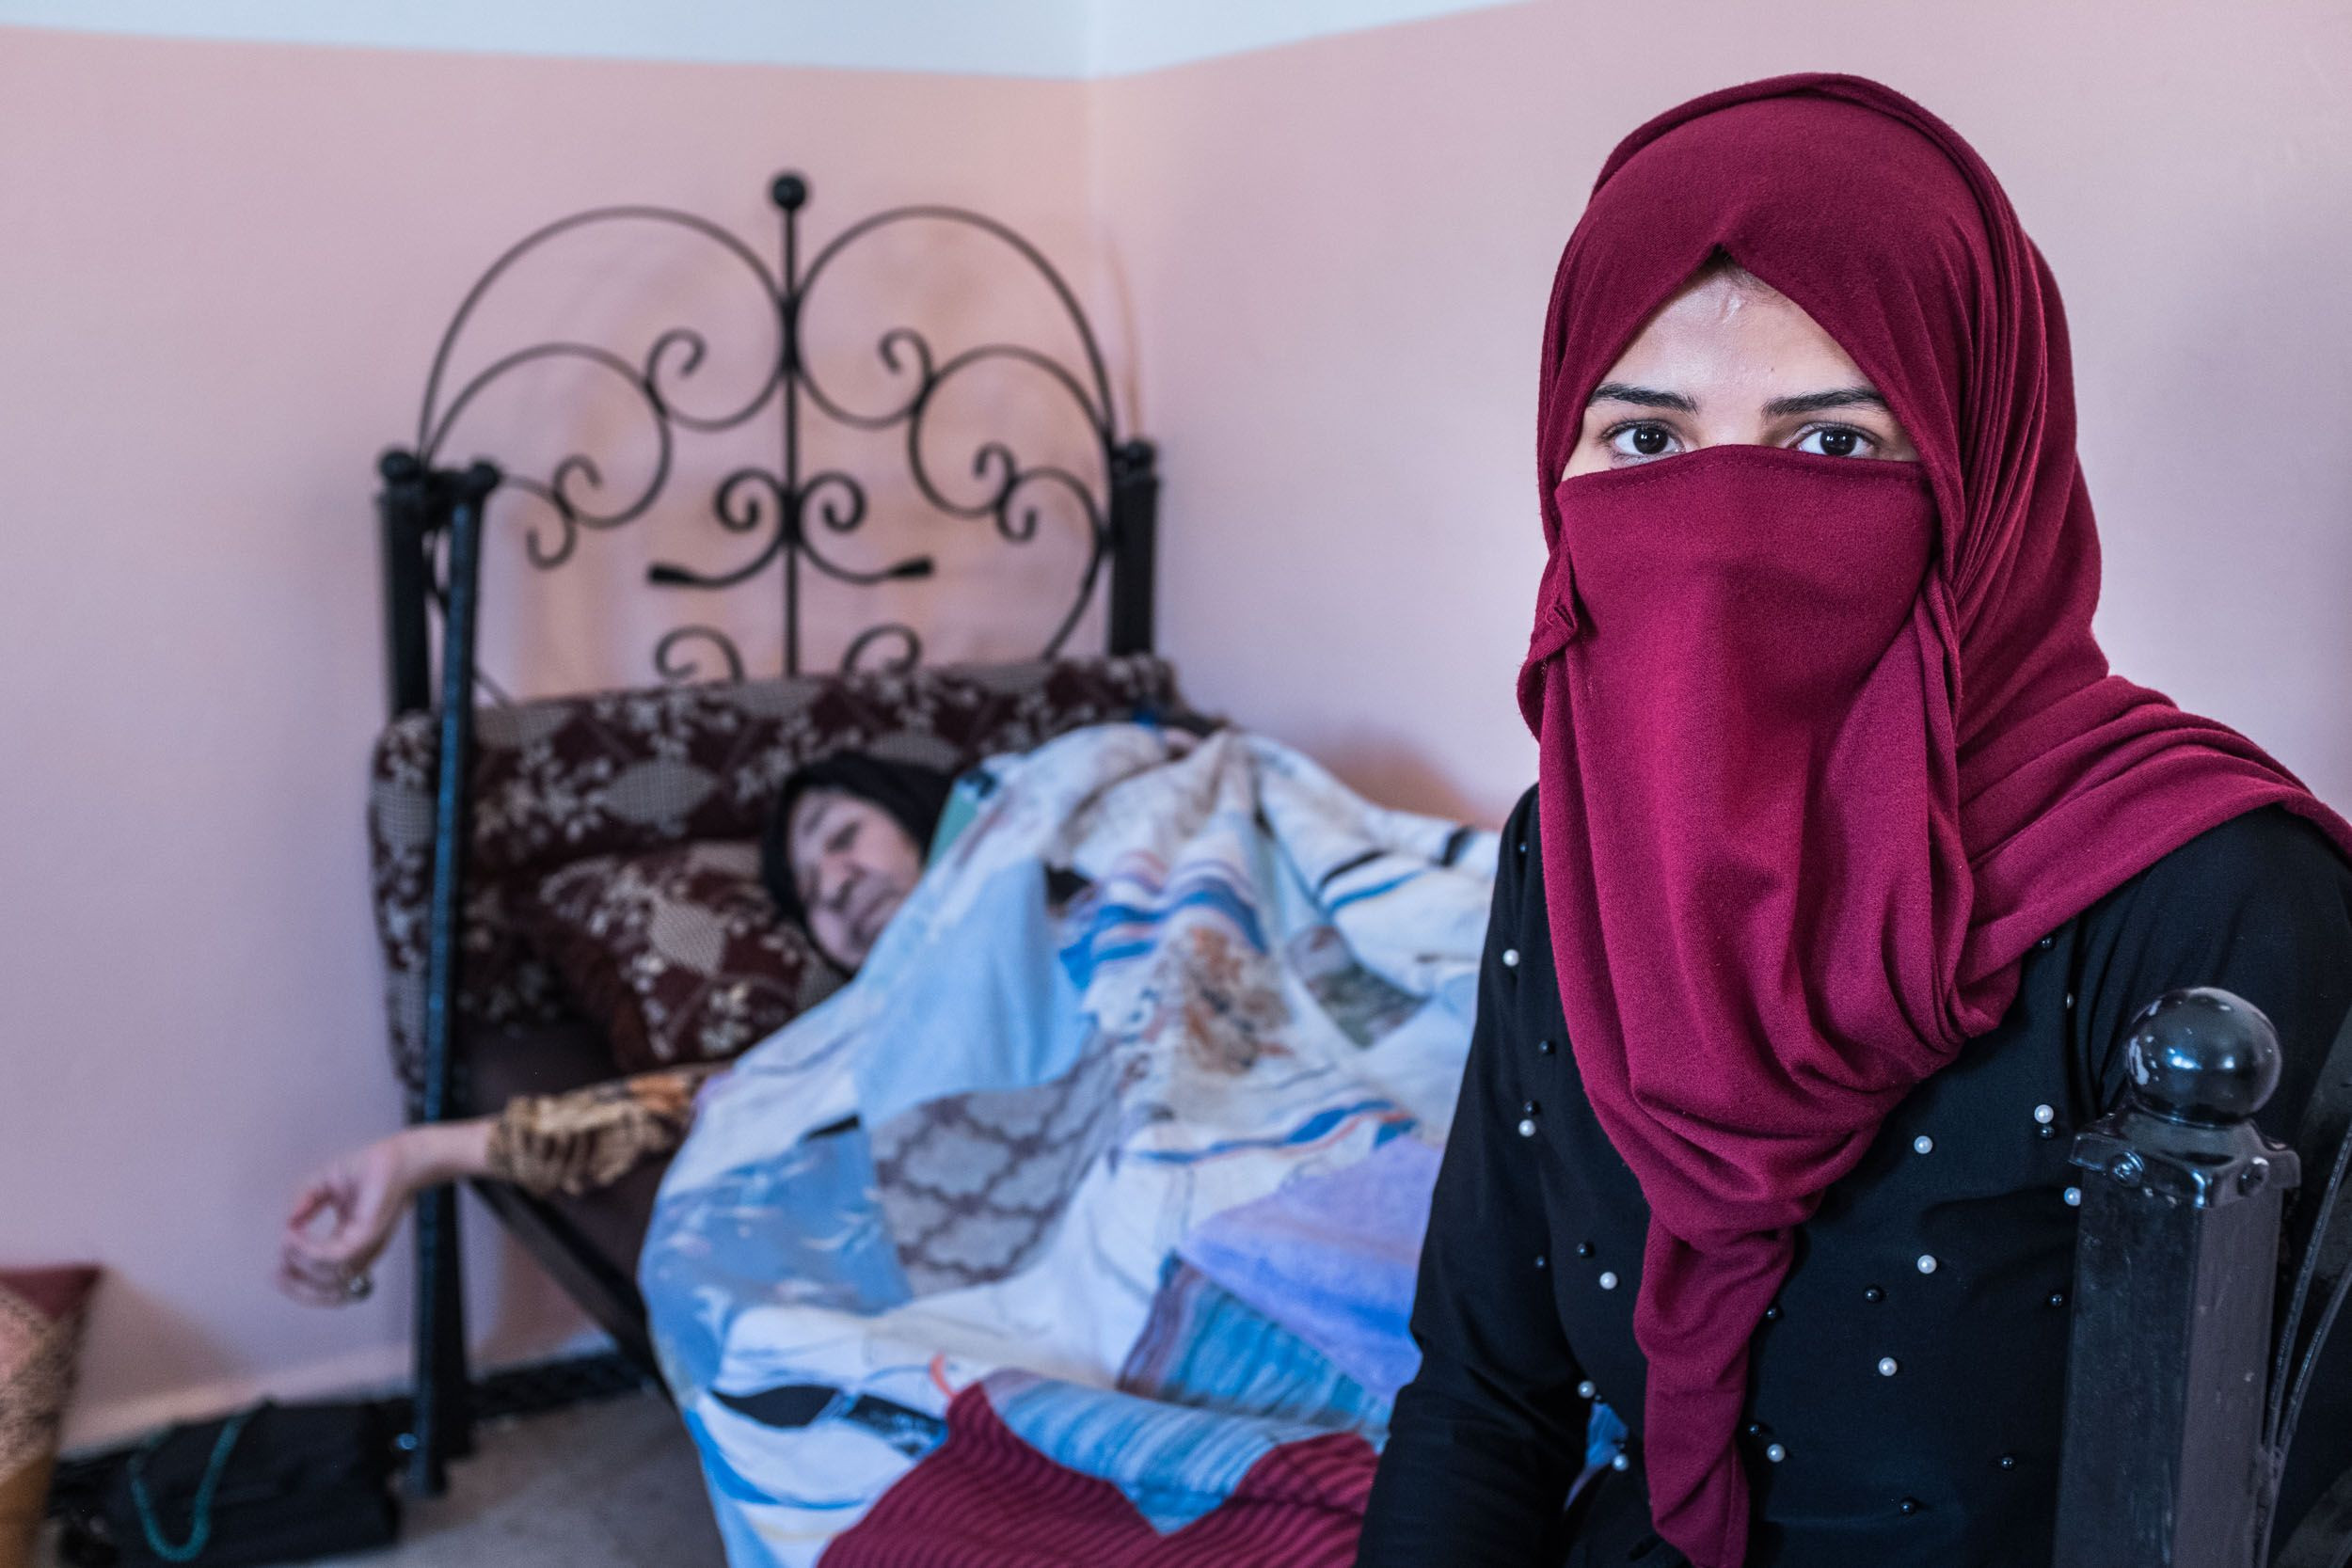 Nour - Married to a Syrian man at the age of 15. Photo by Martin Thaulow.